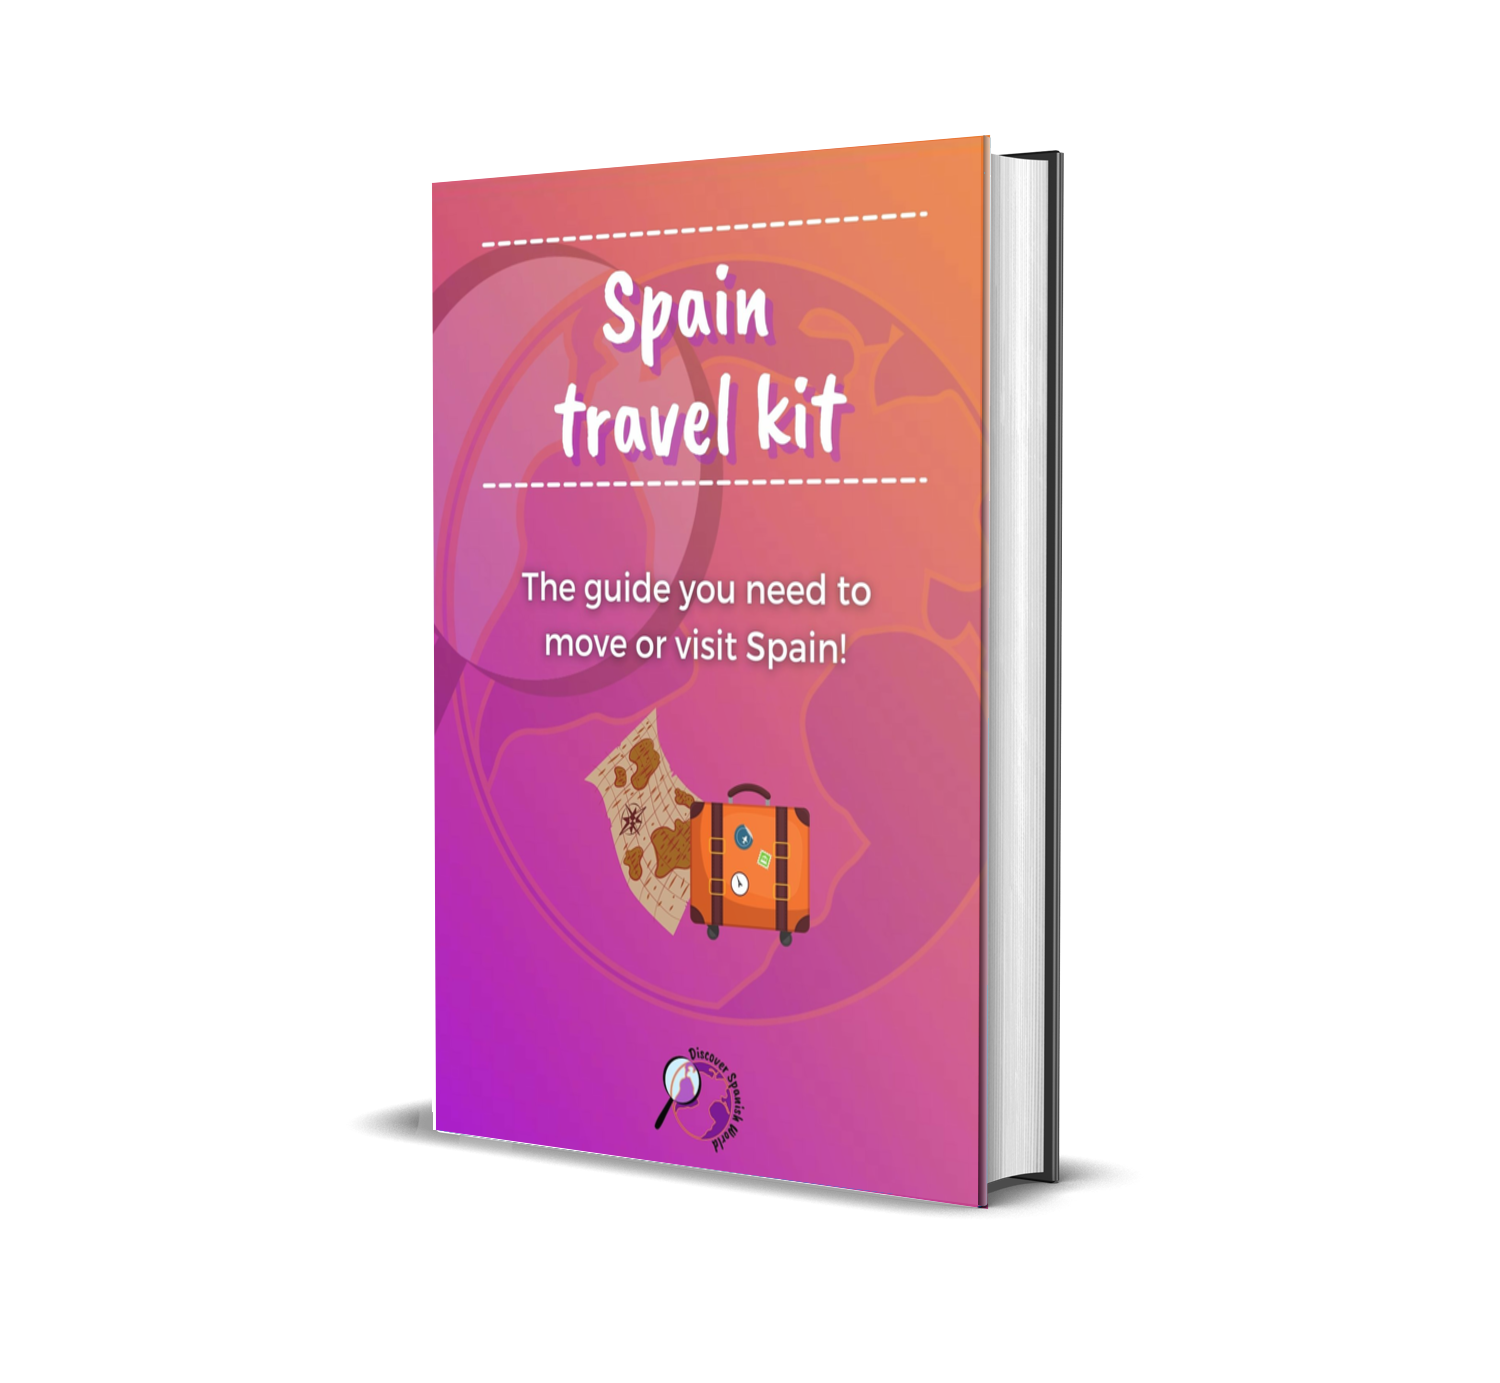 the guide you need to move or visit Spain!